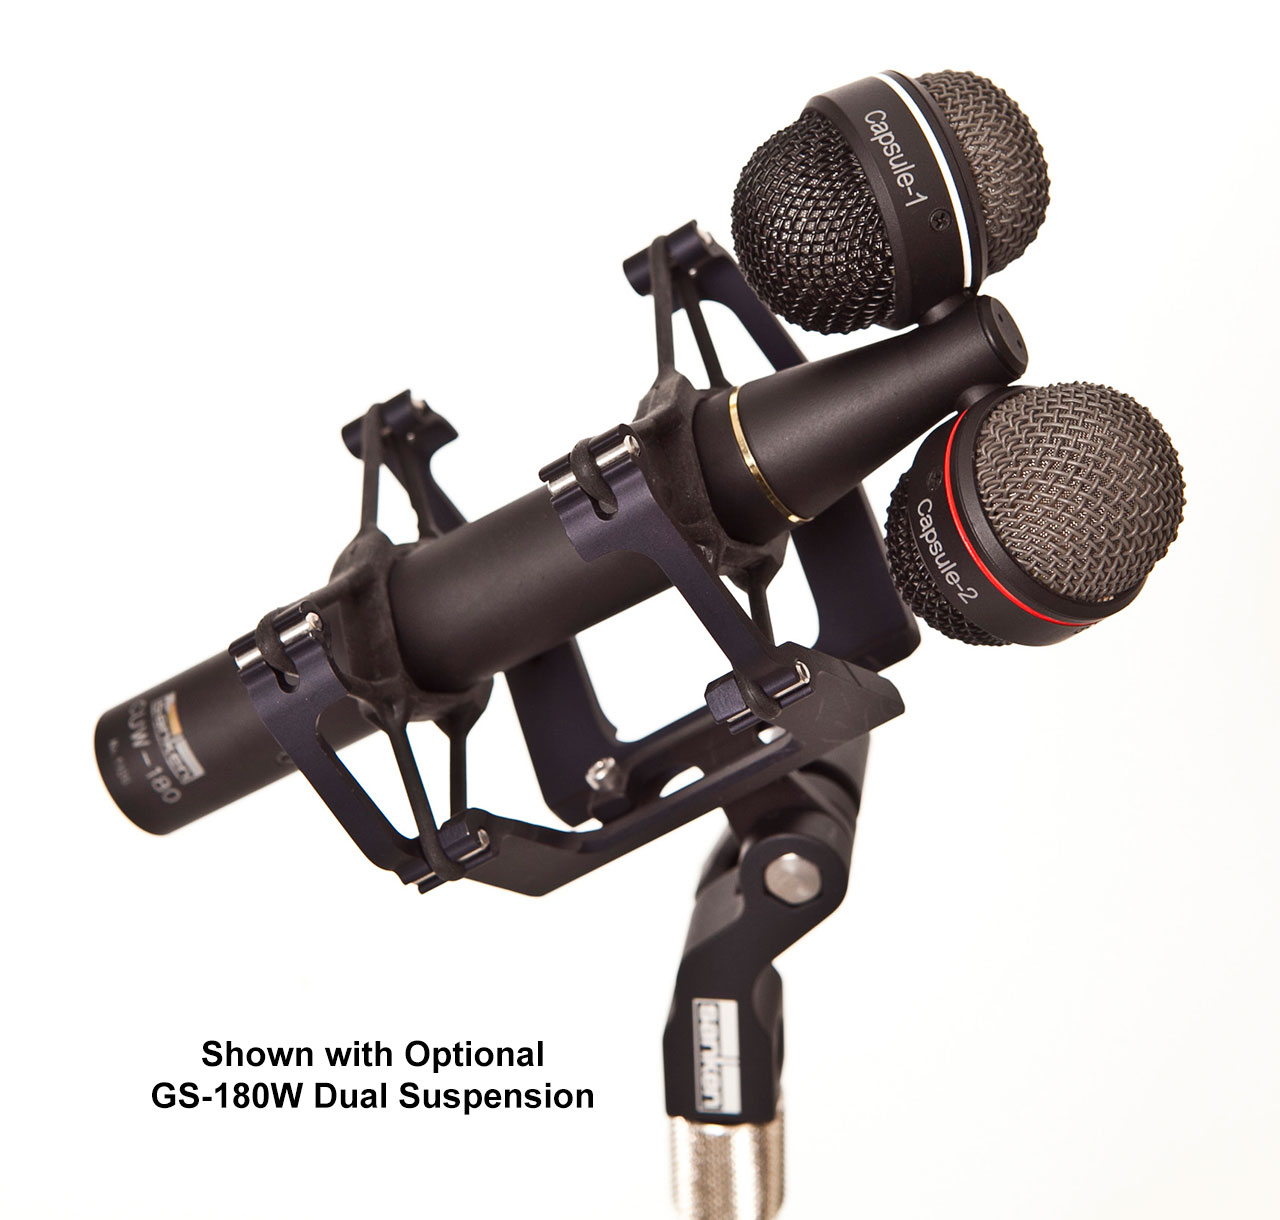 Sanken Chromatic CUW-180 with GS-180W Dual Suspension